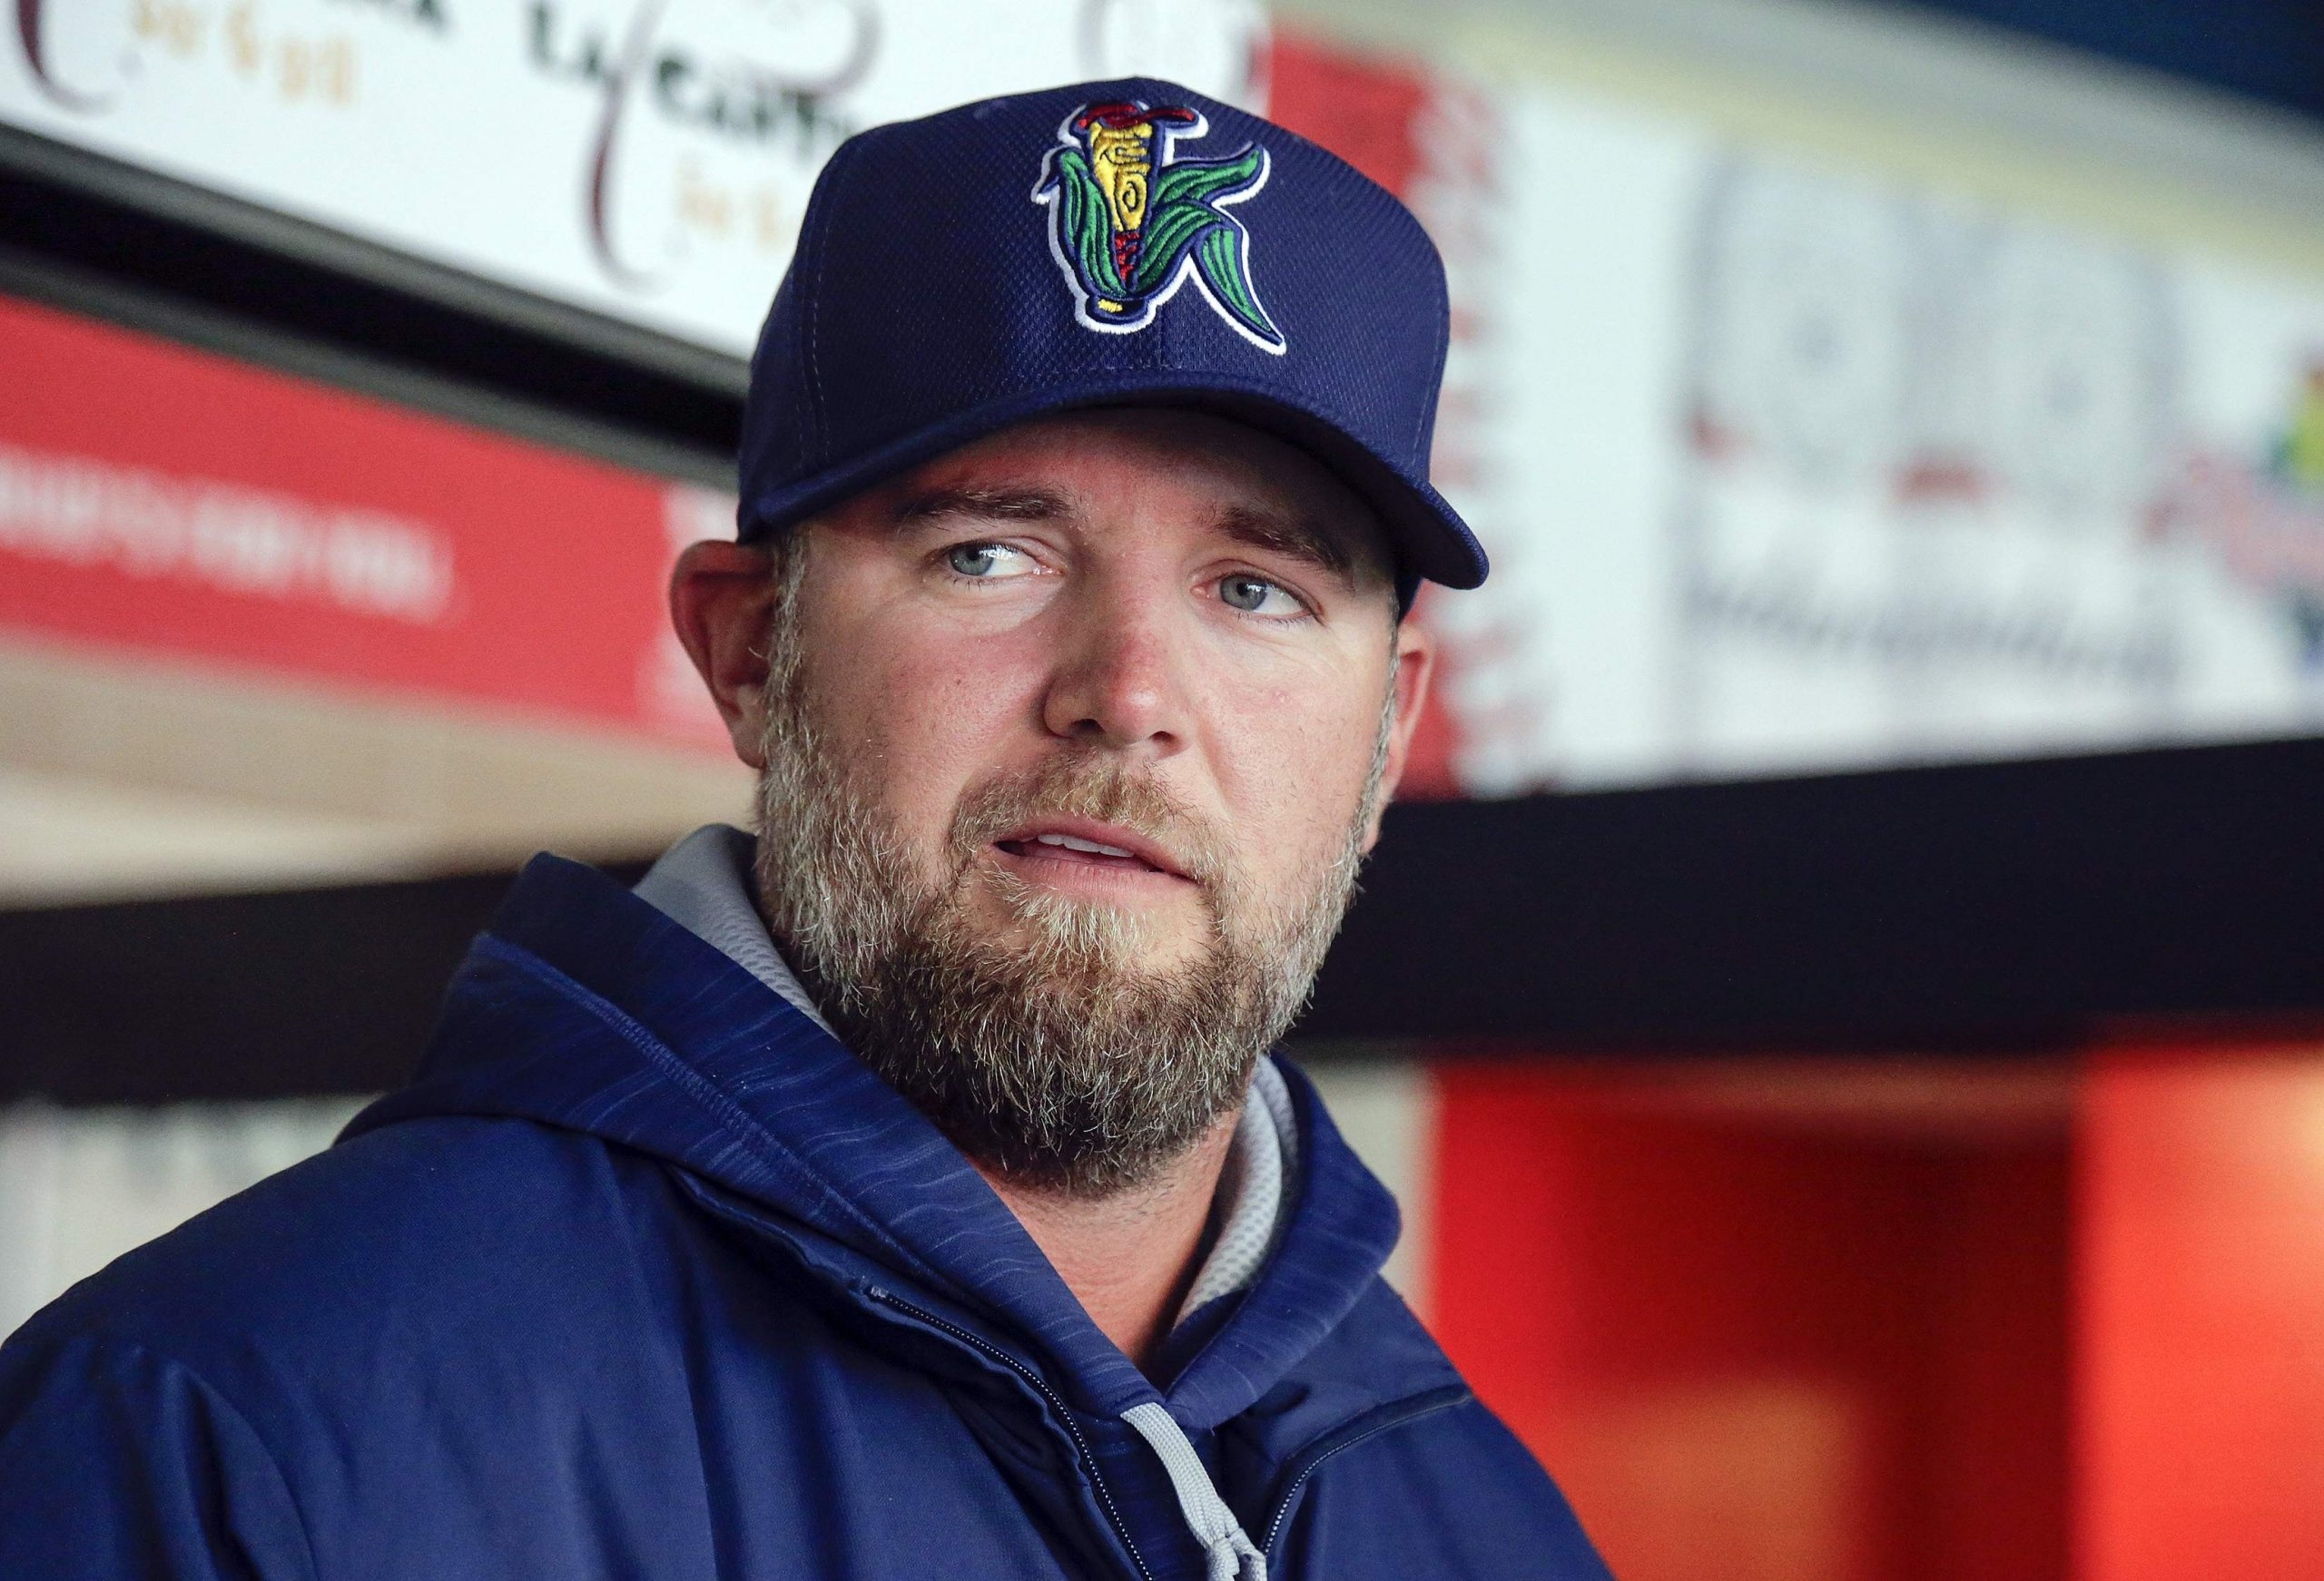 Toby Gardenhire Becomes First Manager of AAA St. Paul Saints